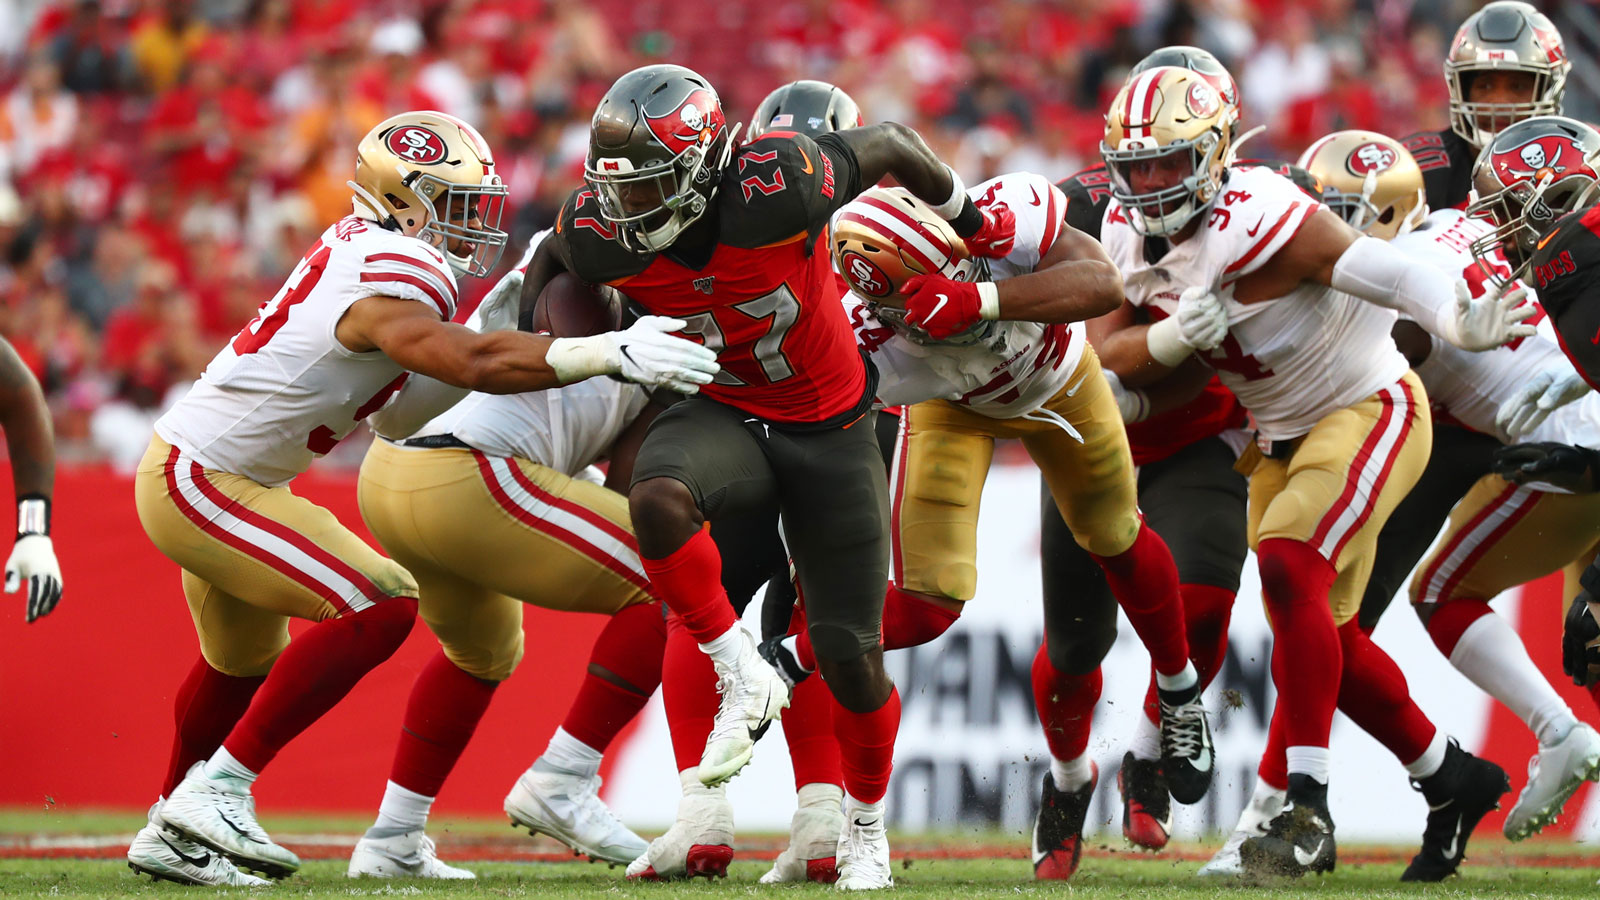 Bucs' running game shows signs of life with 2nd-year RB Ronald Jones II leading way